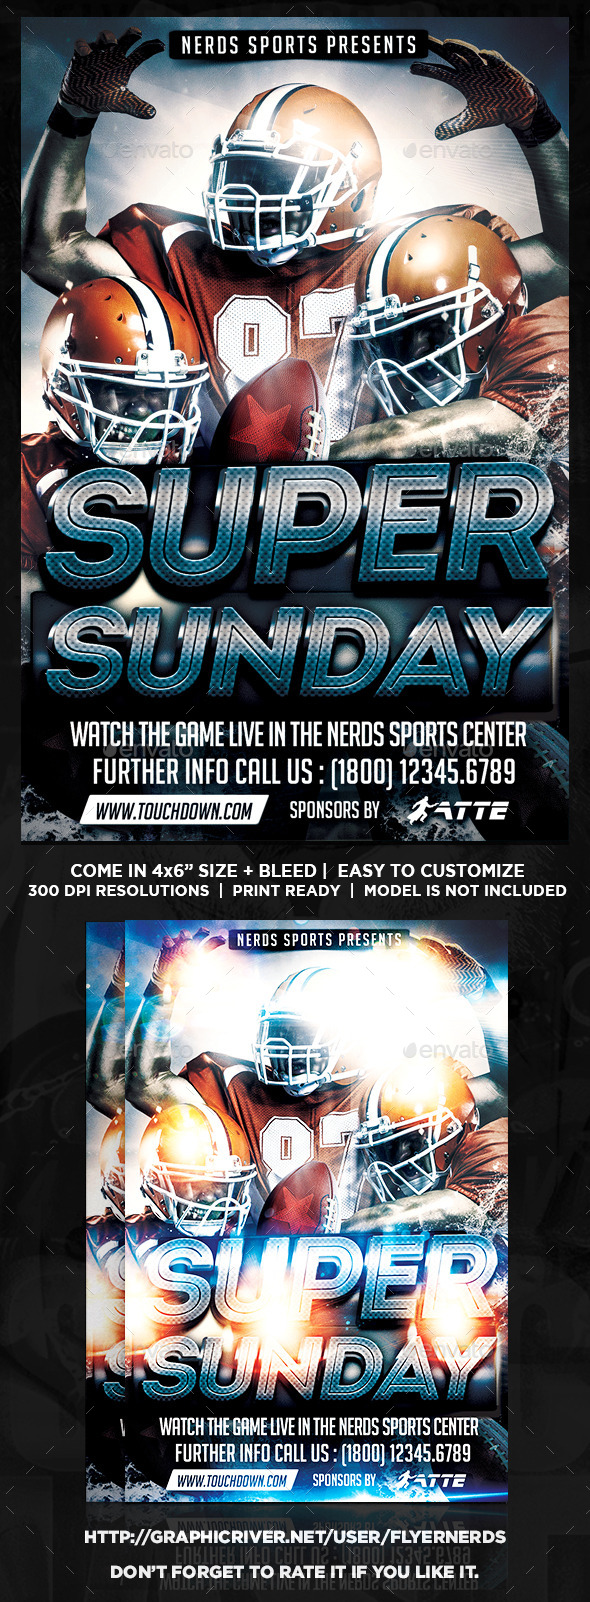 GraphicRiver Super Sunday Football Night Sports Flyer 9879722